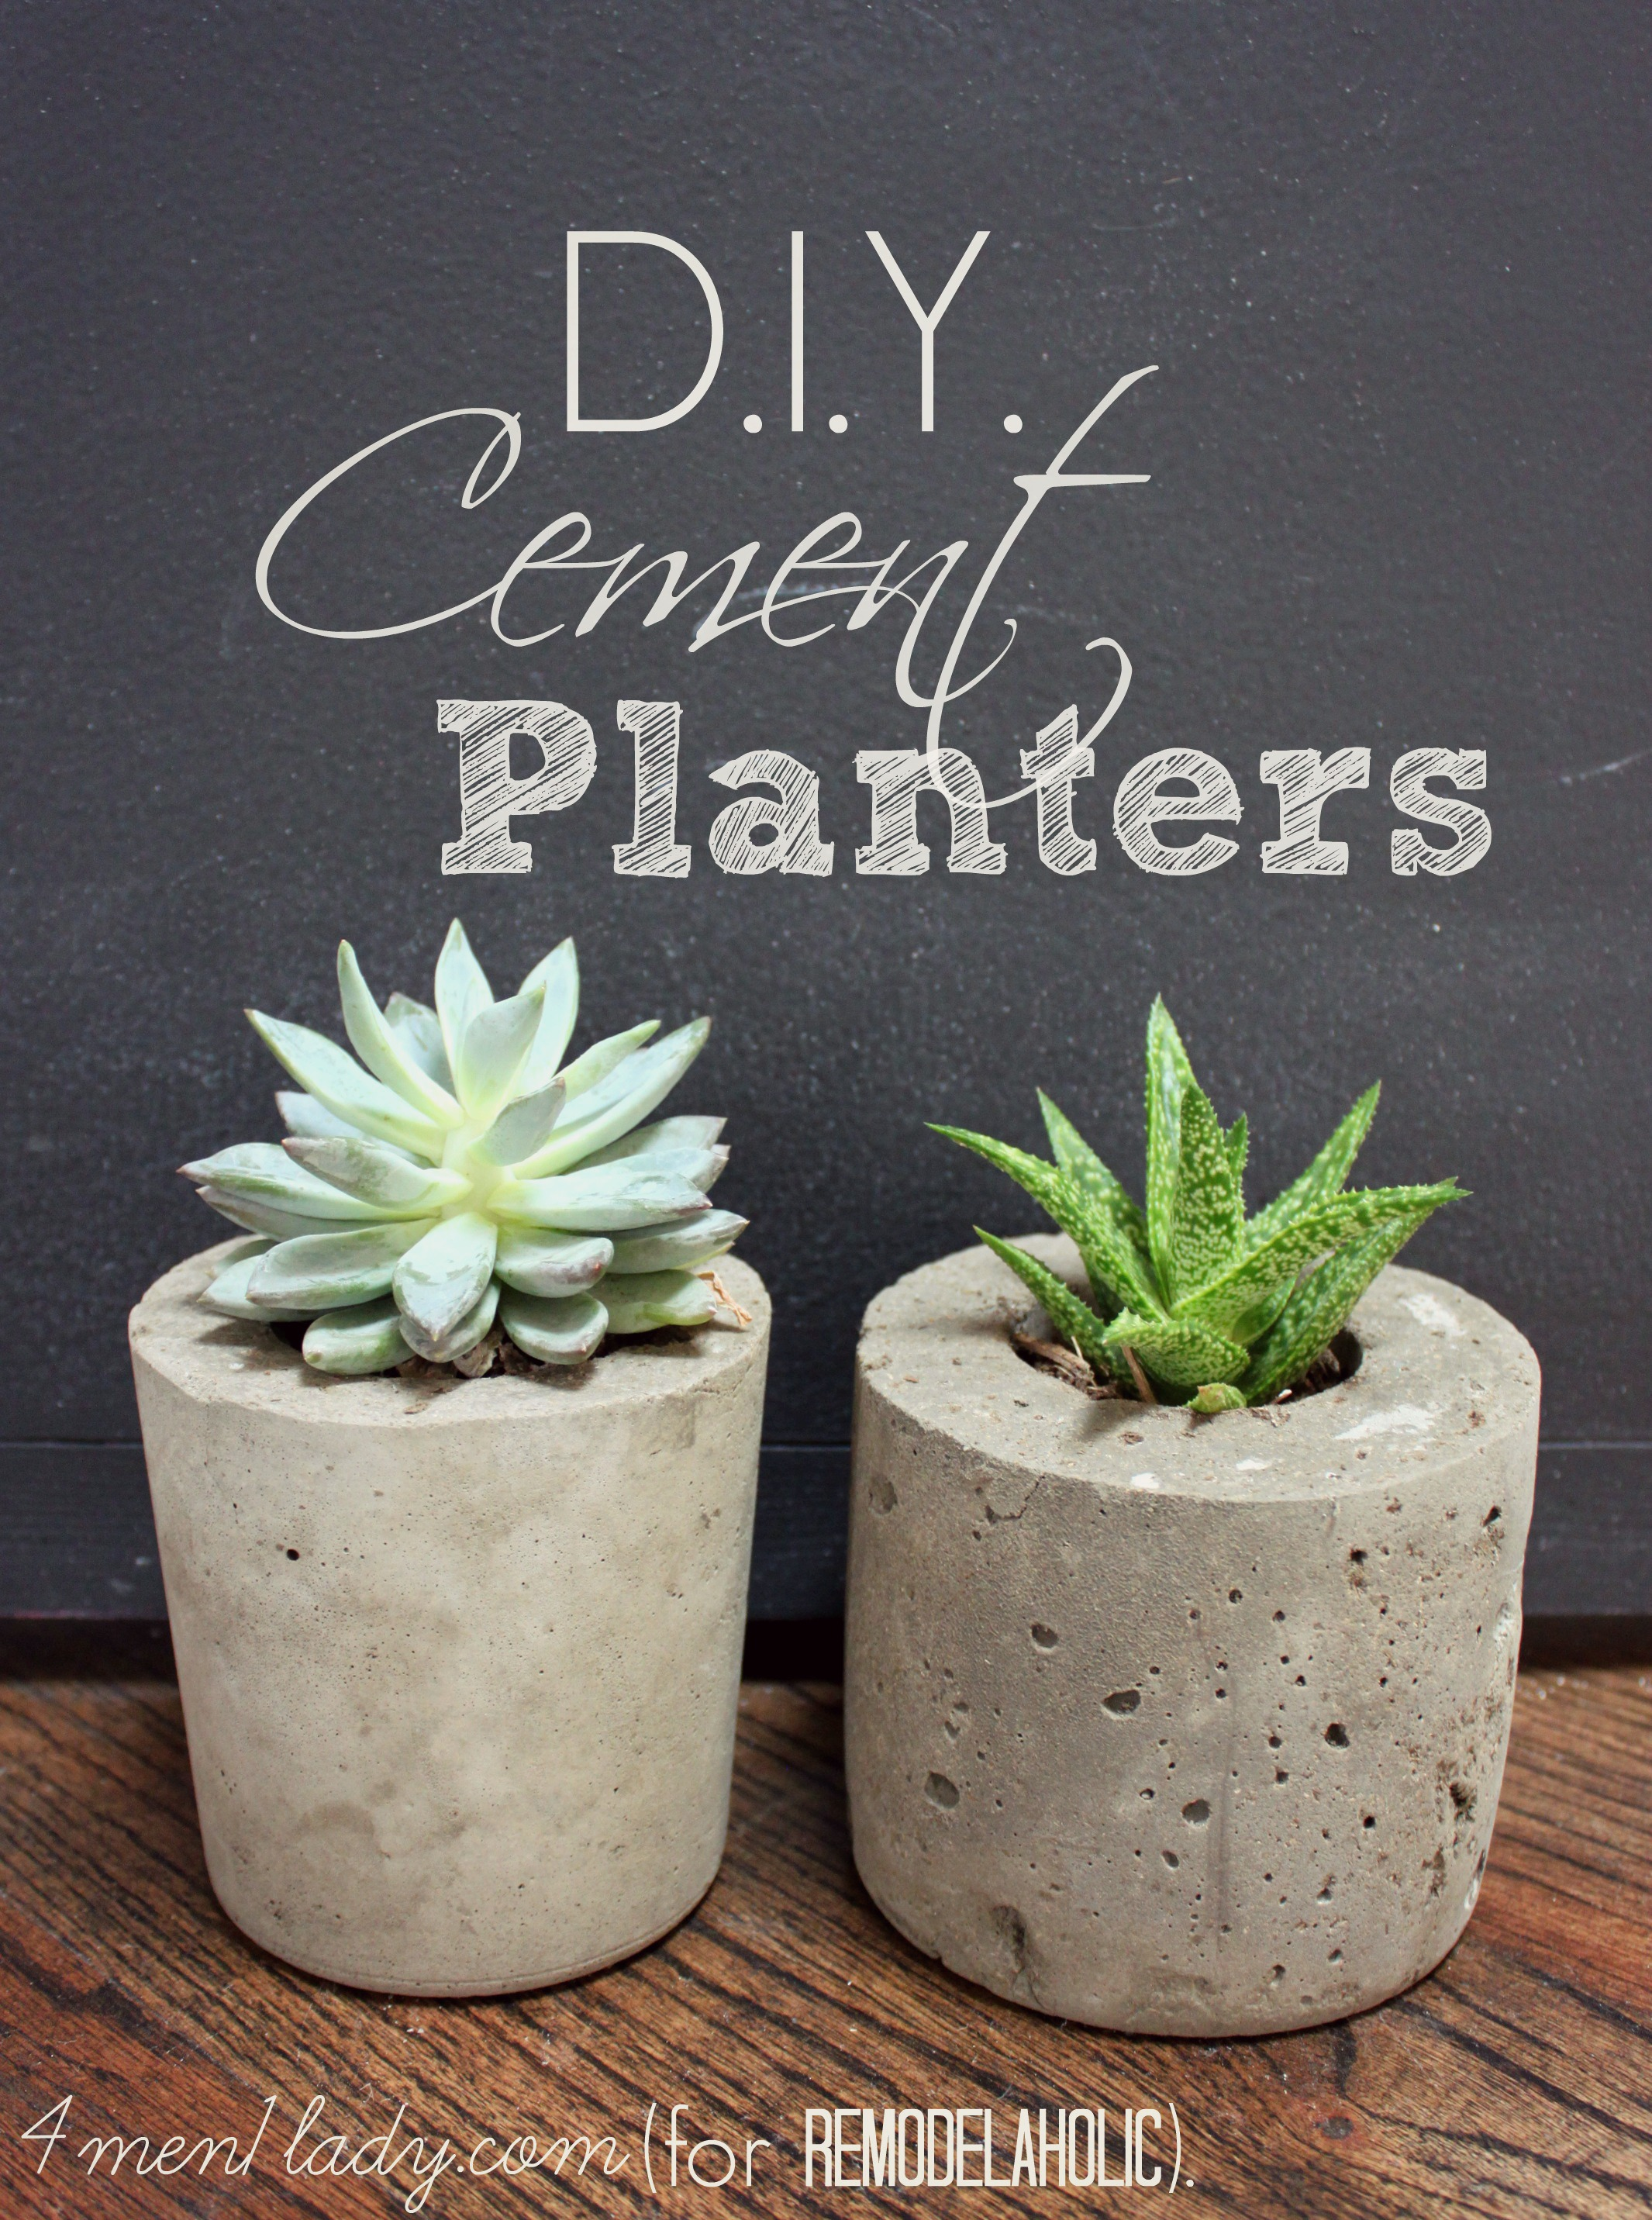 Remodelaholic | DIY Cement Planters and Garden Globes